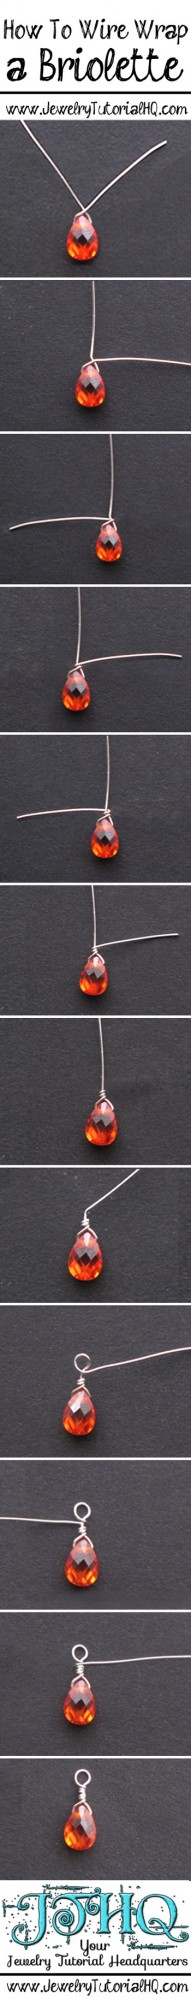 how to wire wrap a briolette step by step {+ video}